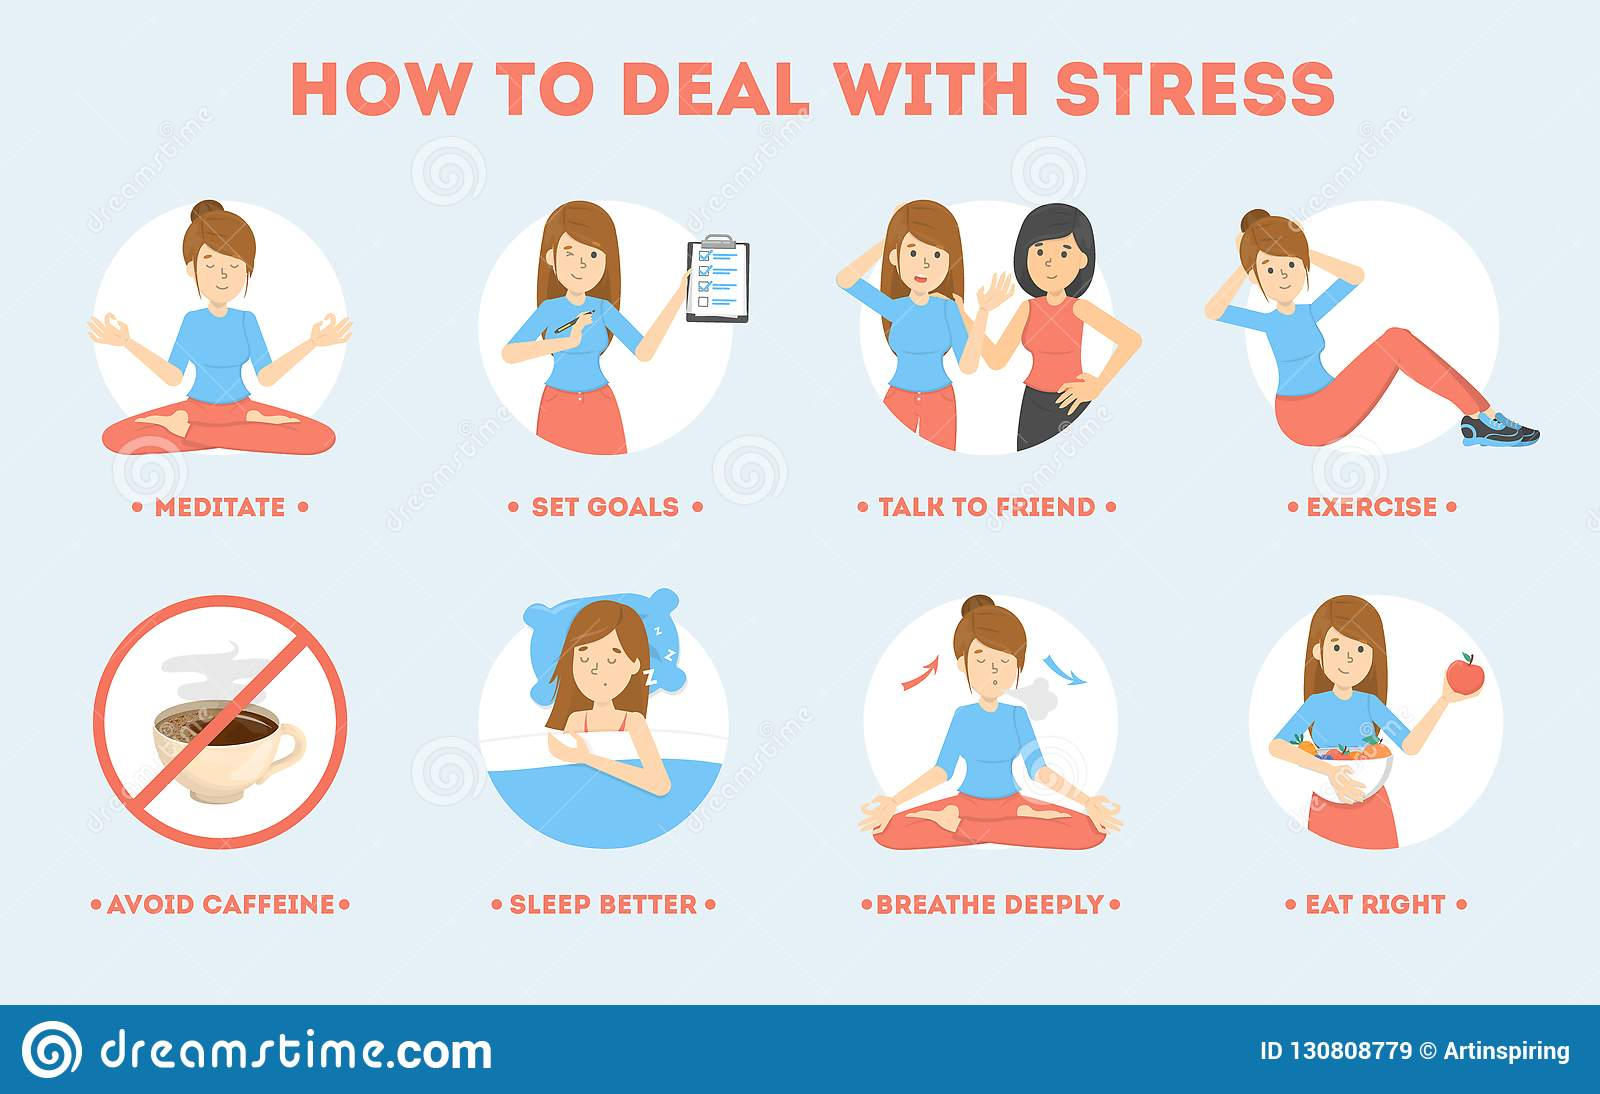 How To Deal With Stress Guide Depression Reduce Stock